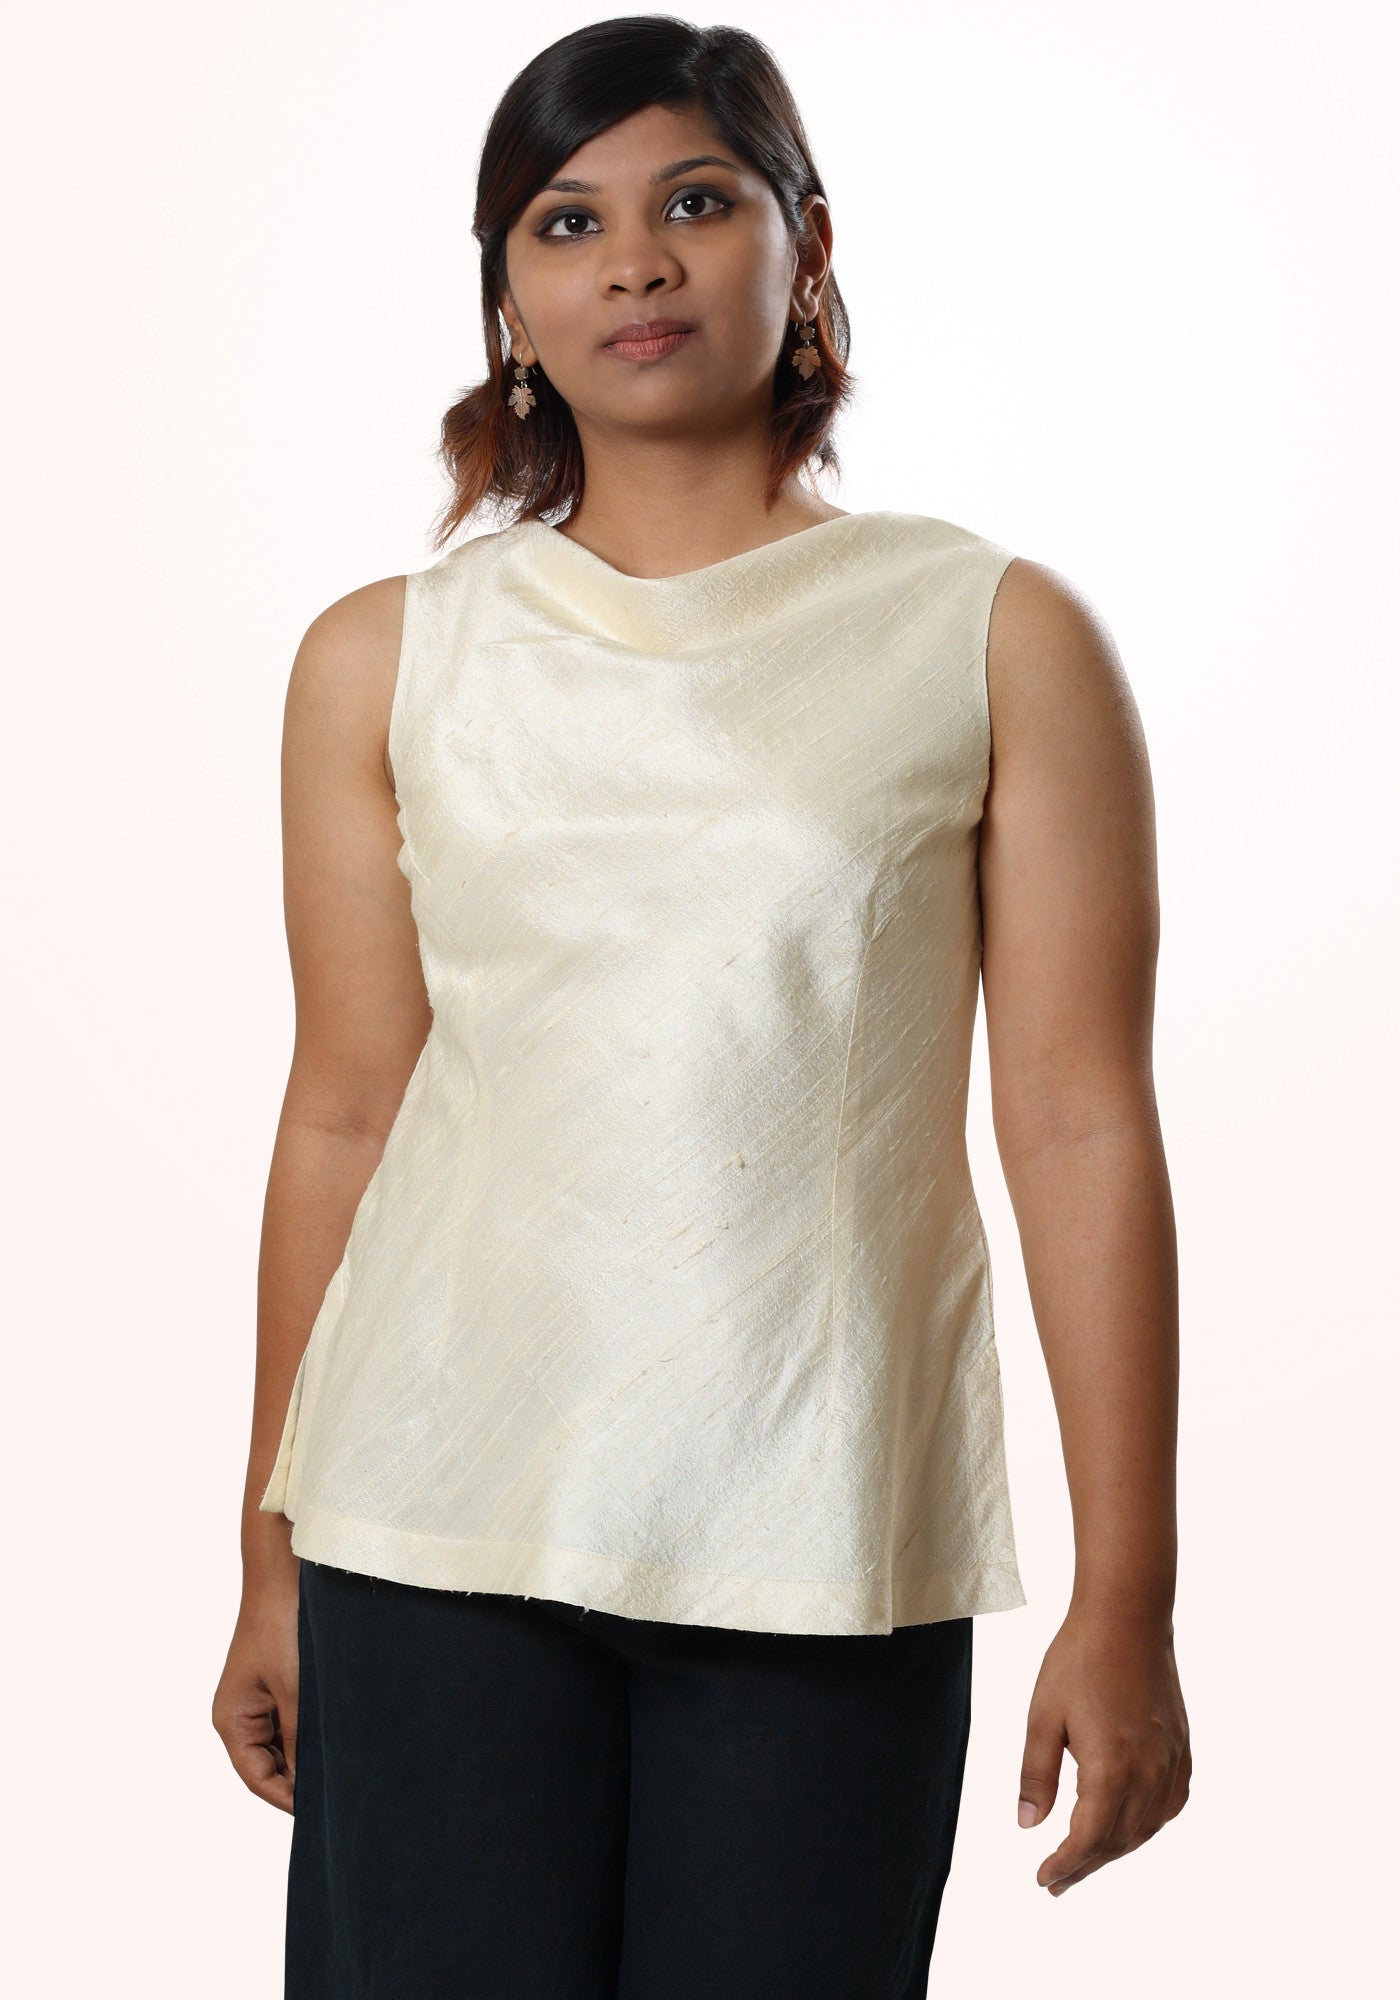 Silk Cowl Neck Short Top - MINC ecofashion